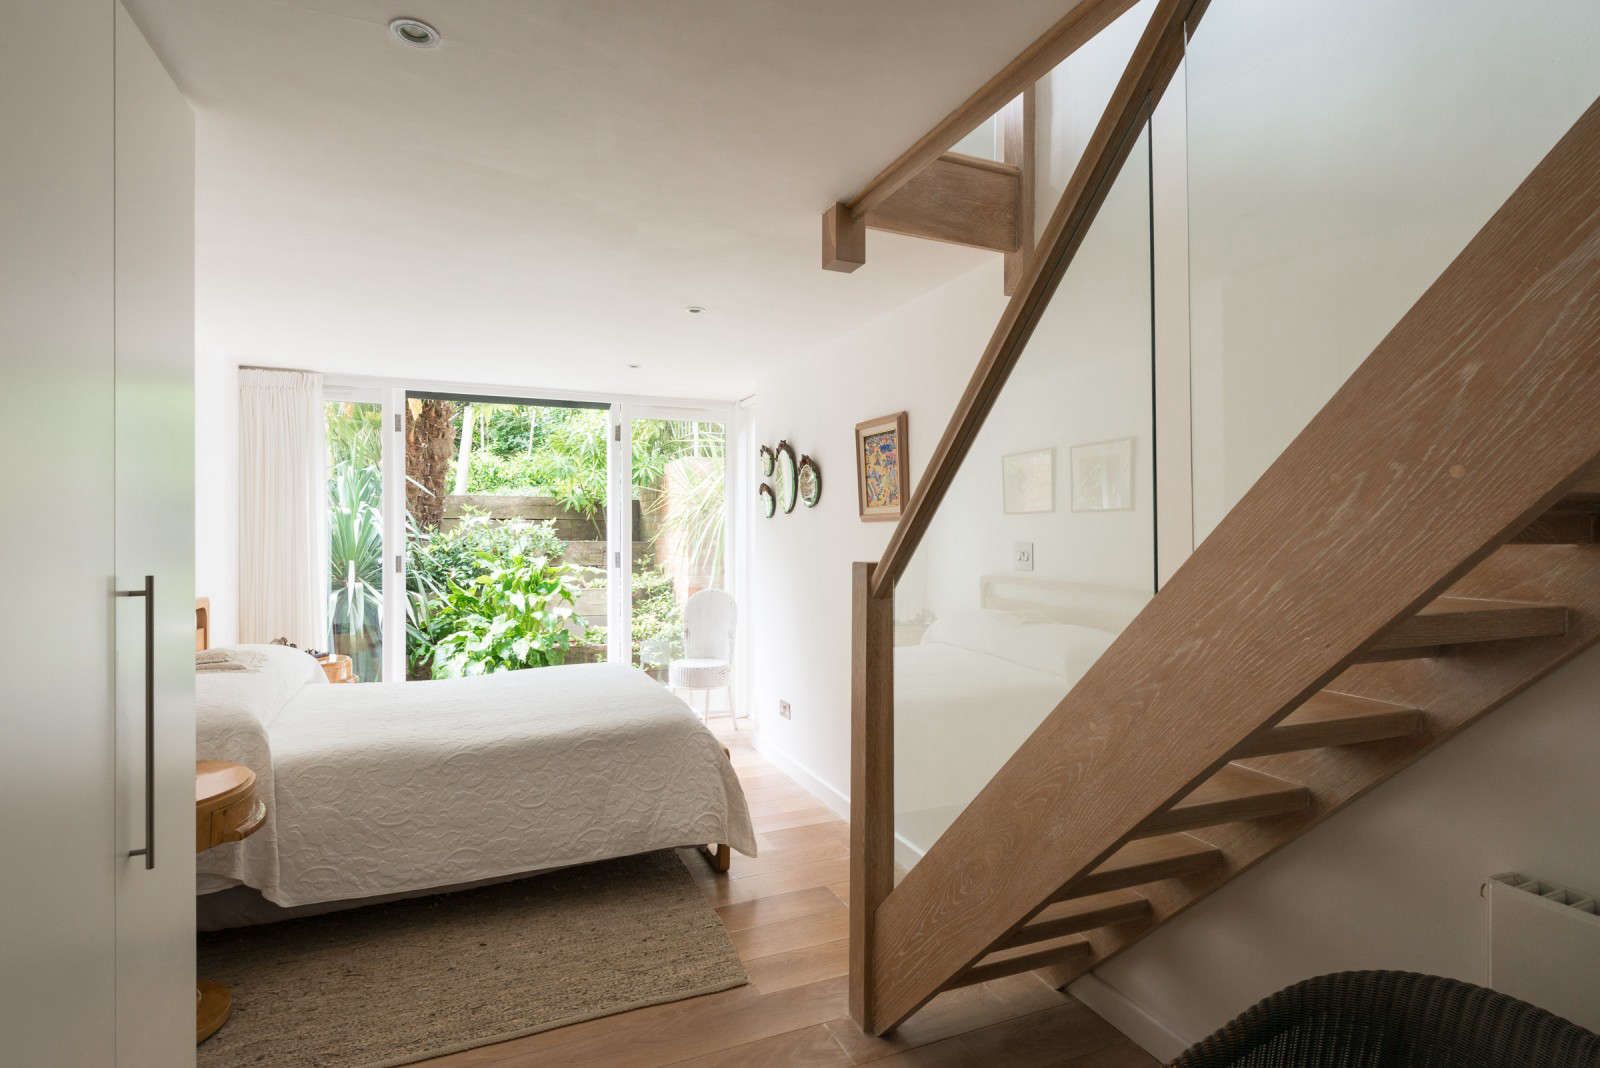 greenhouse-conversion-kent-themodernhouse-bedroom-french-doors-3